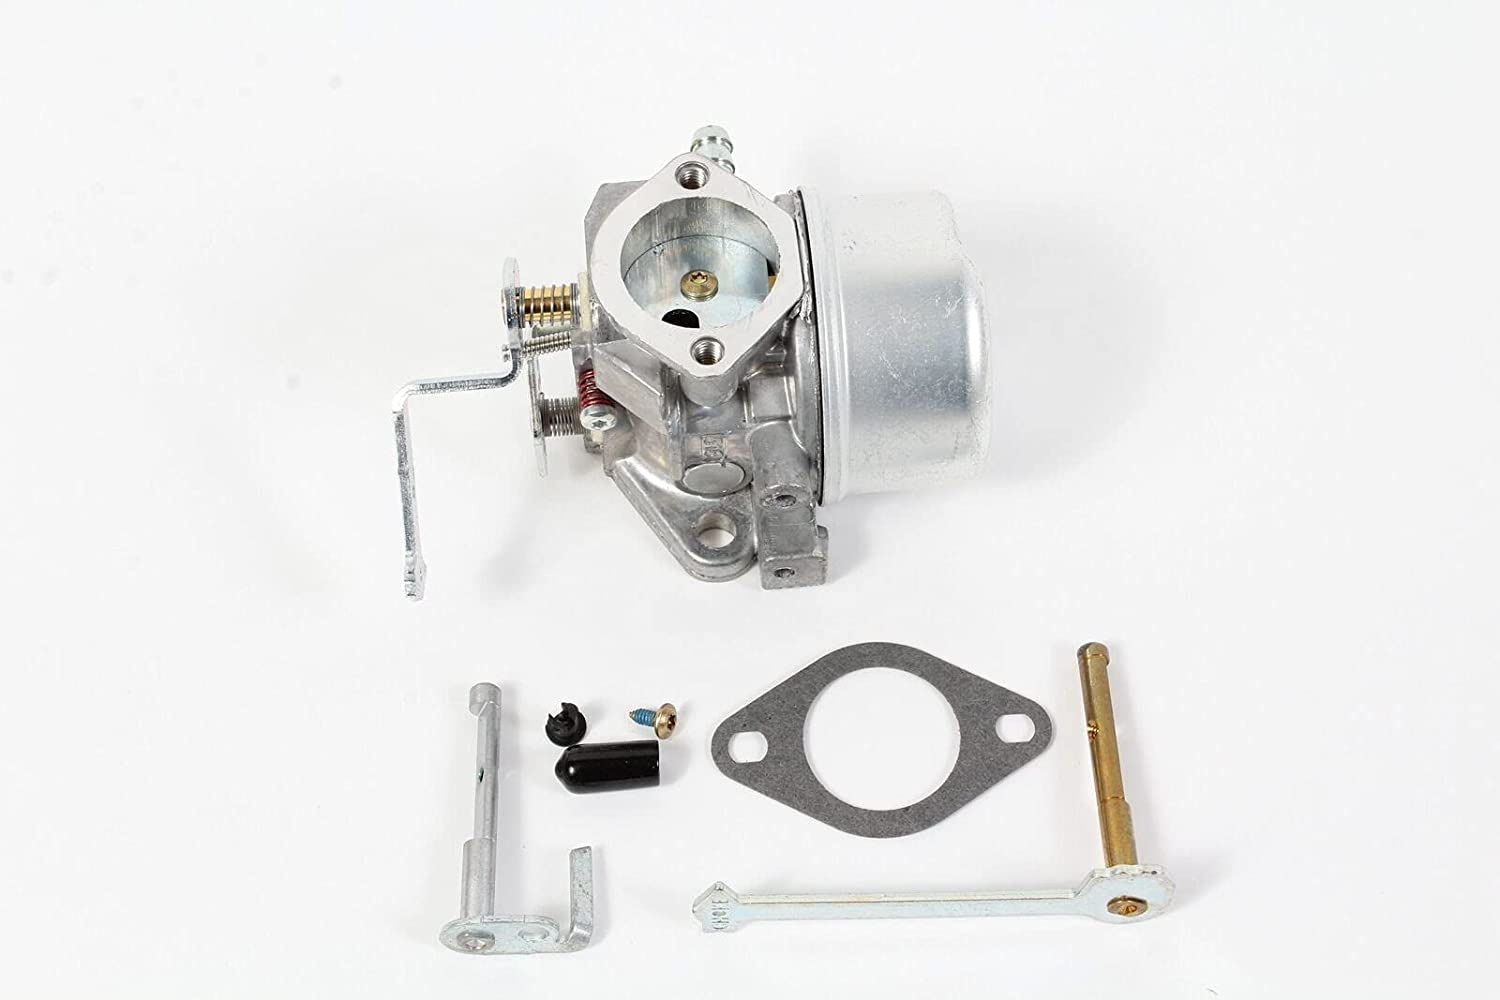 Genuine 640268A OEM Ranking integrated Max 57% OFF 1st place Carburetor